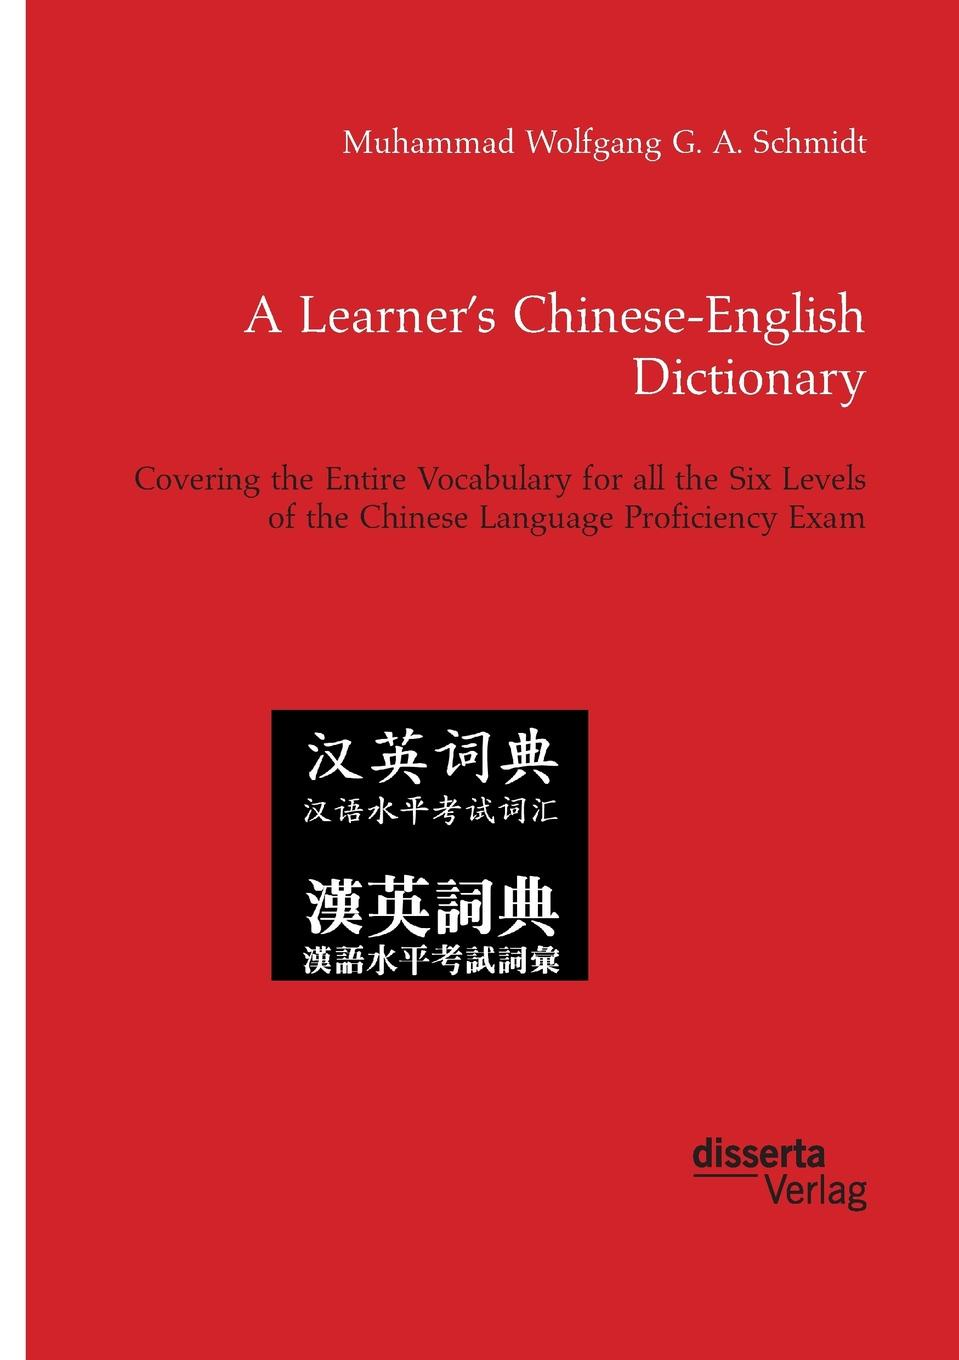 Muhammad Wolfgang G. A. Schmidt A Learner.s Chinese-English Dictionary. Covering the Entire Vocabulary for all the Six Levels of the Chinese Language Proficiency Exam elaine marmel word 2010 simplified